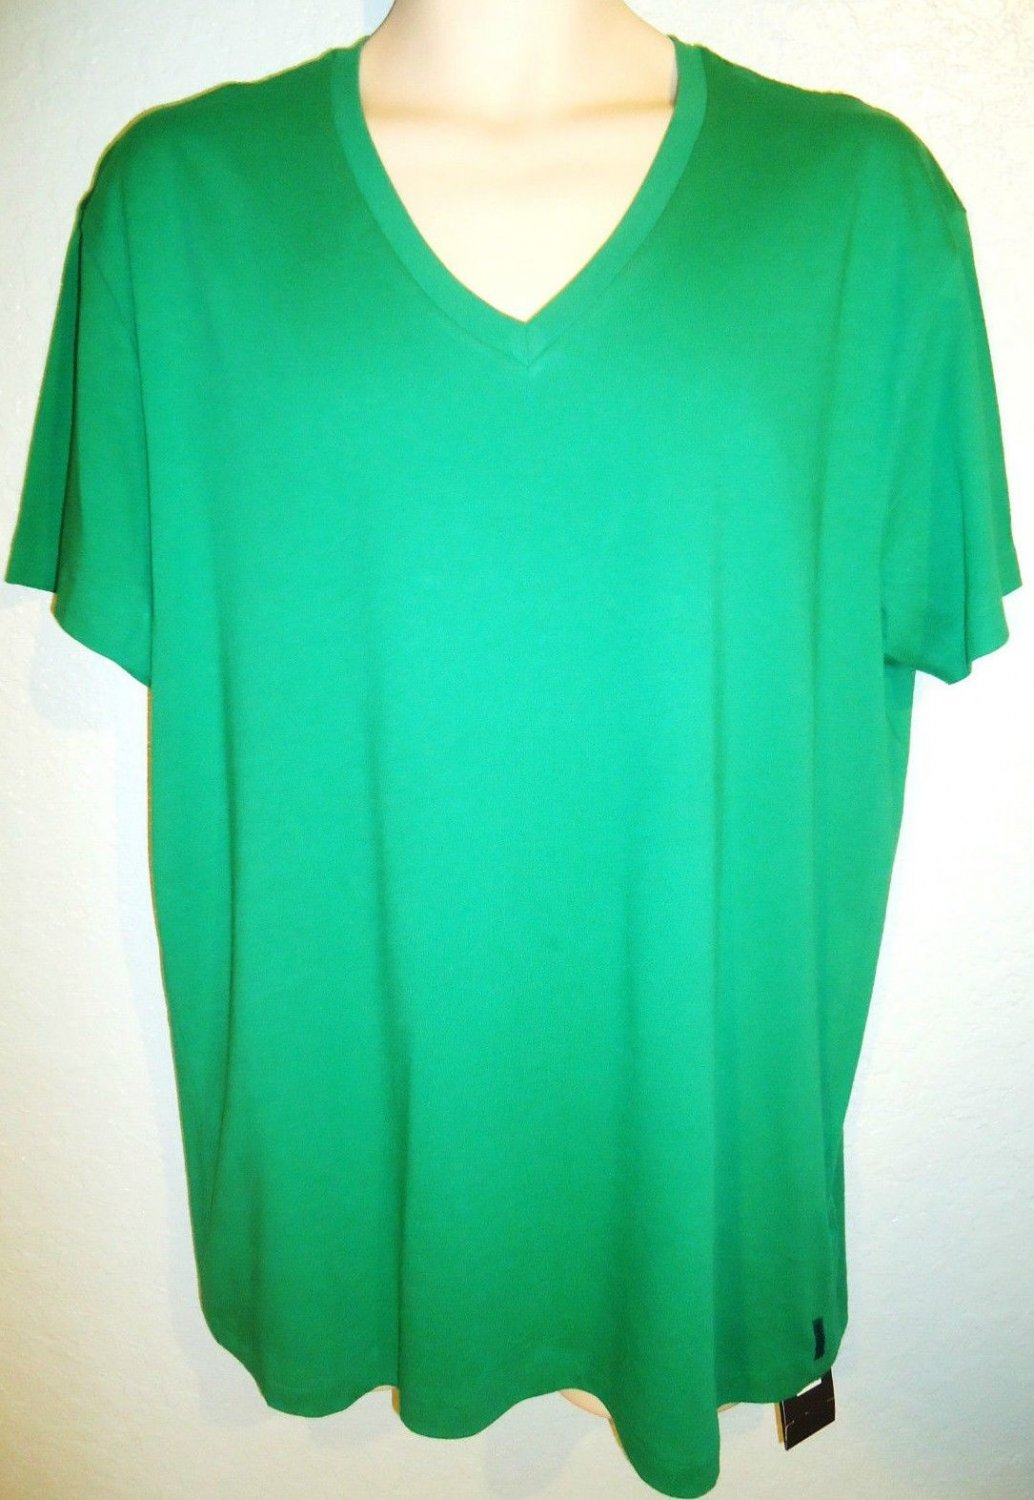 ARMANI EXCHANGE - A|X - GREEN - XL - V-NECK - MUSCLE - TEE - NEW - T-SHIRT